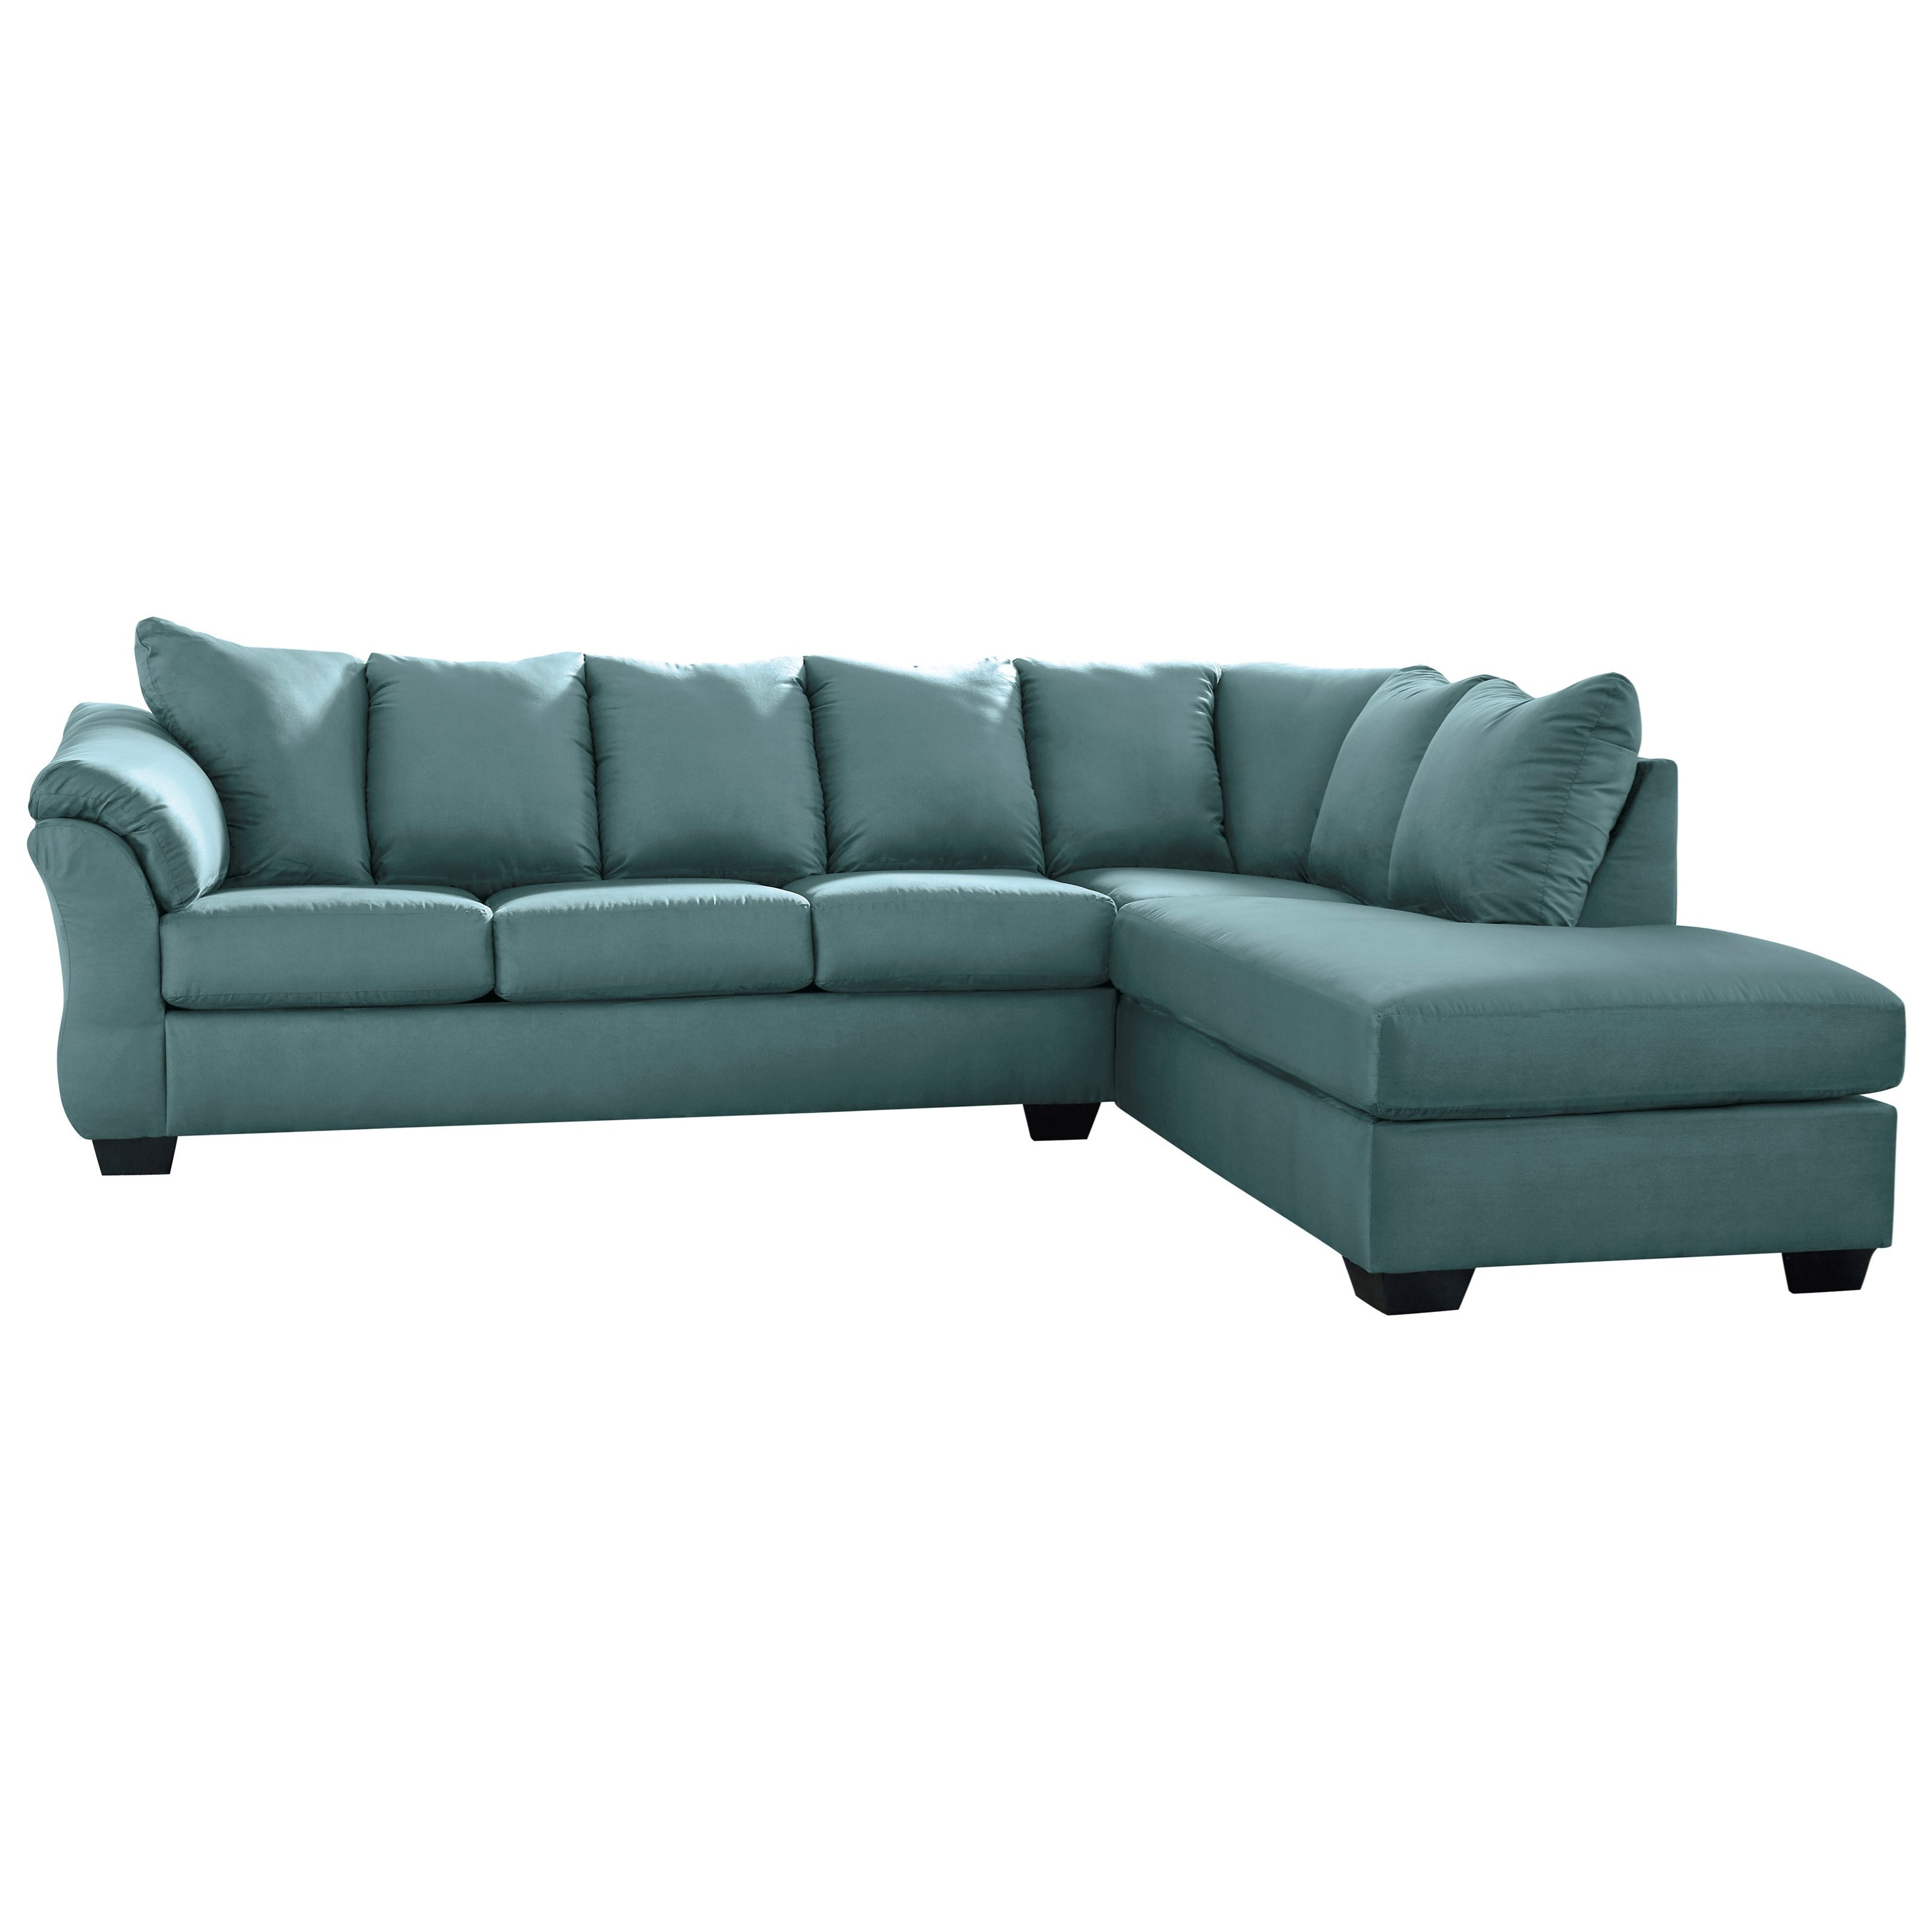 Darcy - Sky 2-Piece Sectional Sofa by Ashley (Signature Design) at Johnny Janosik